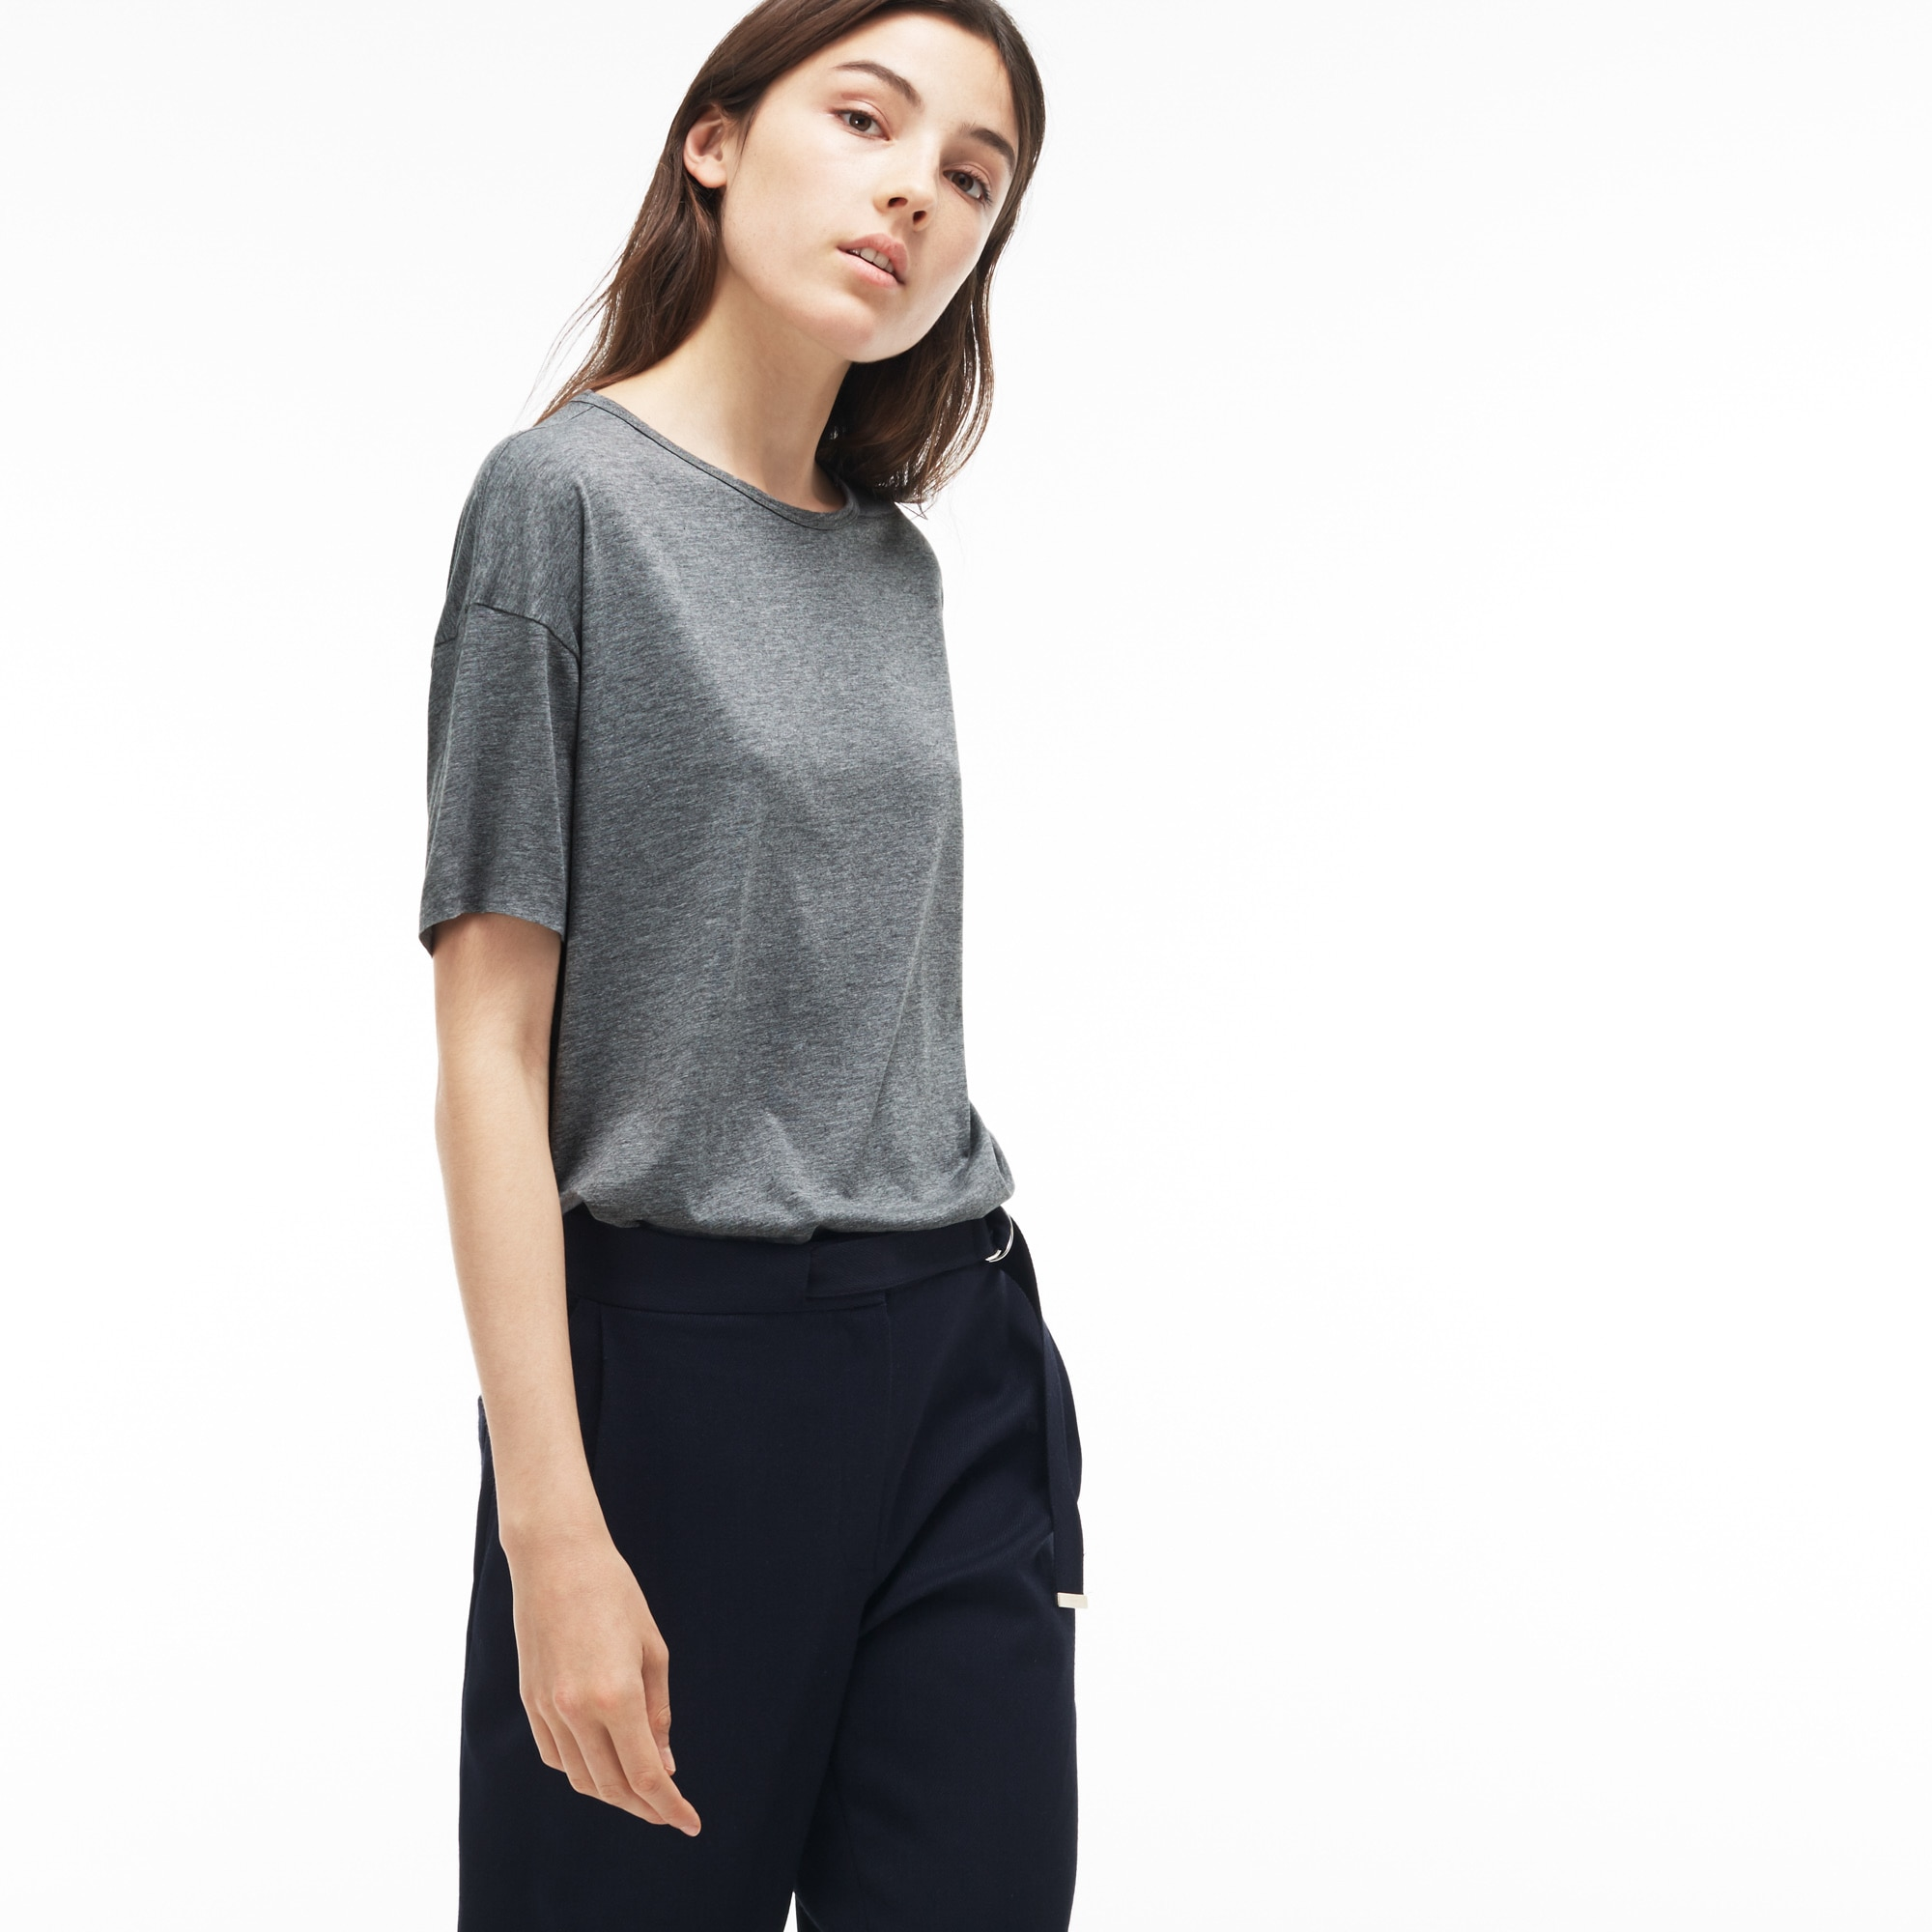 Women's Relaxed Fit Crew Neck Flowing Jersey T-Shirt